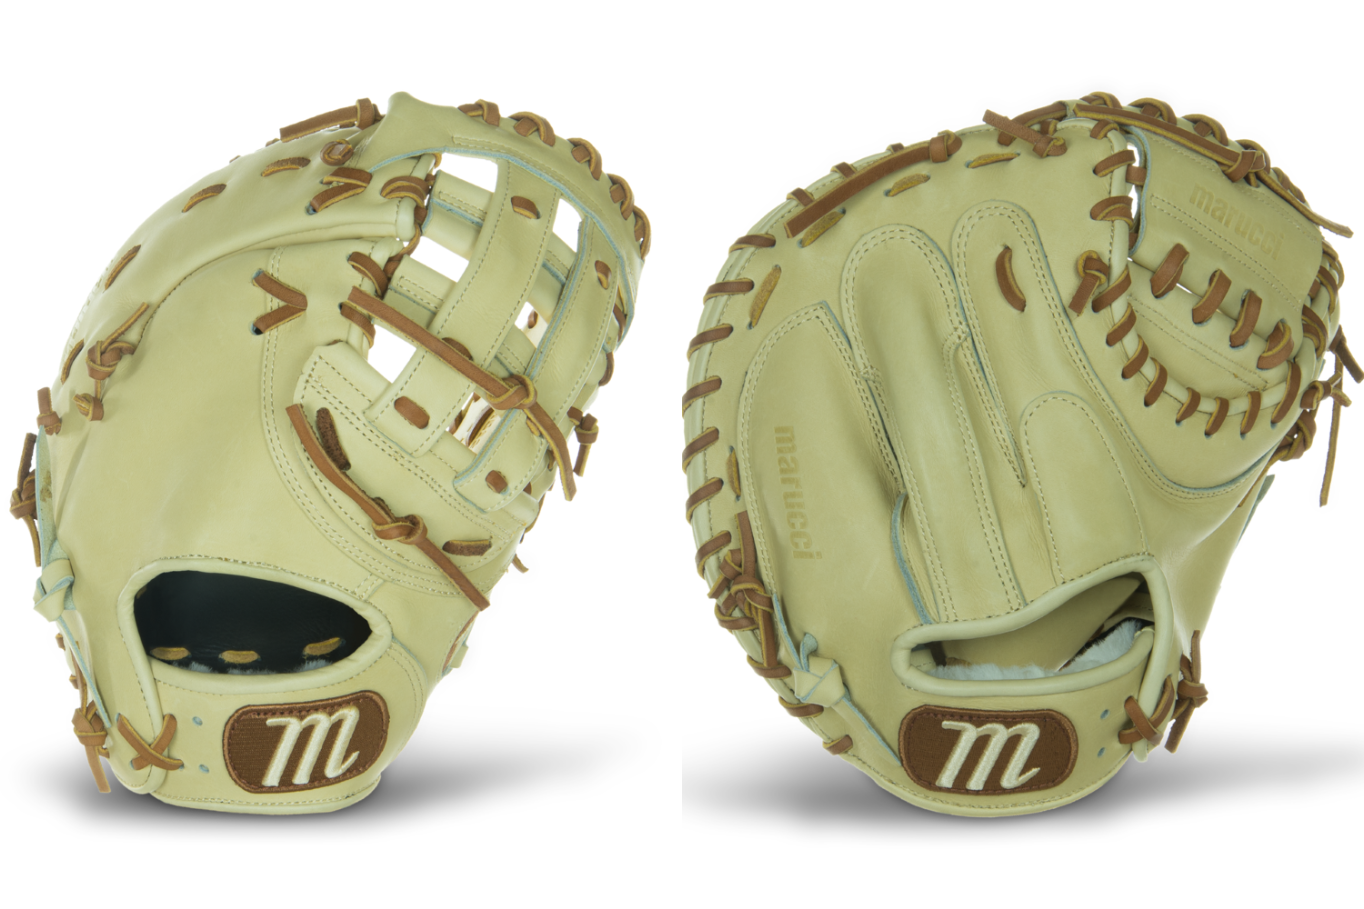 marucci-htg-catcher-1b-gloves